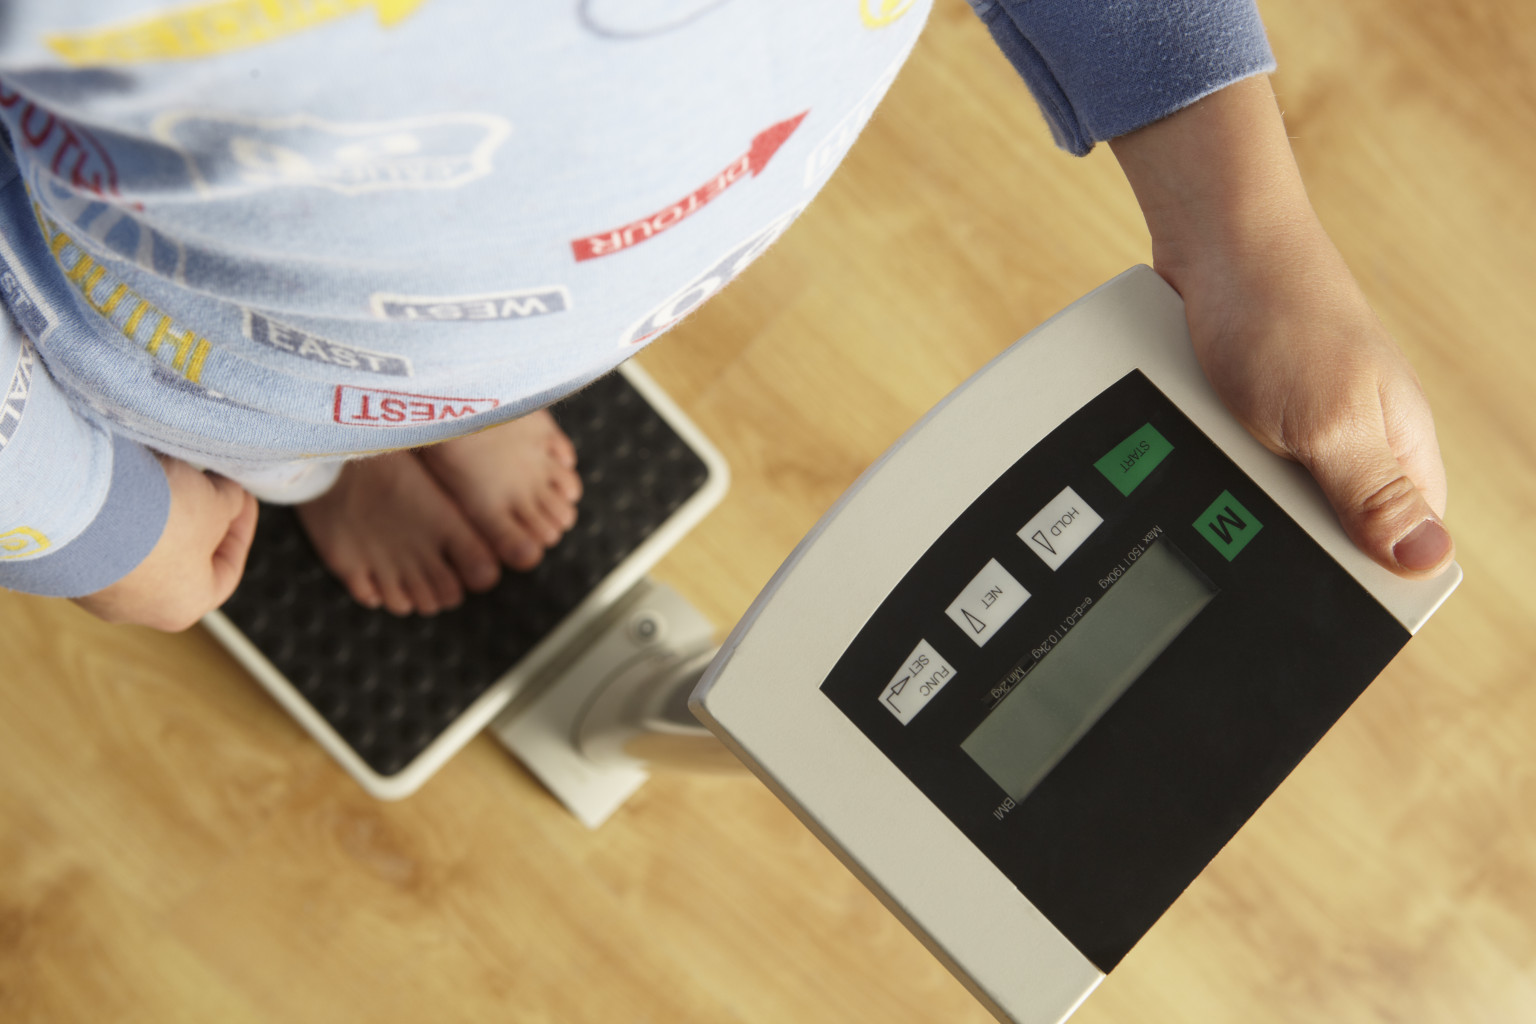 american children and teens is overweight 5 shocking reasons why americans are getting fatter  almost a third of american children and teens are overweight, but  you can now support salon from as little as $2, and help shape the.